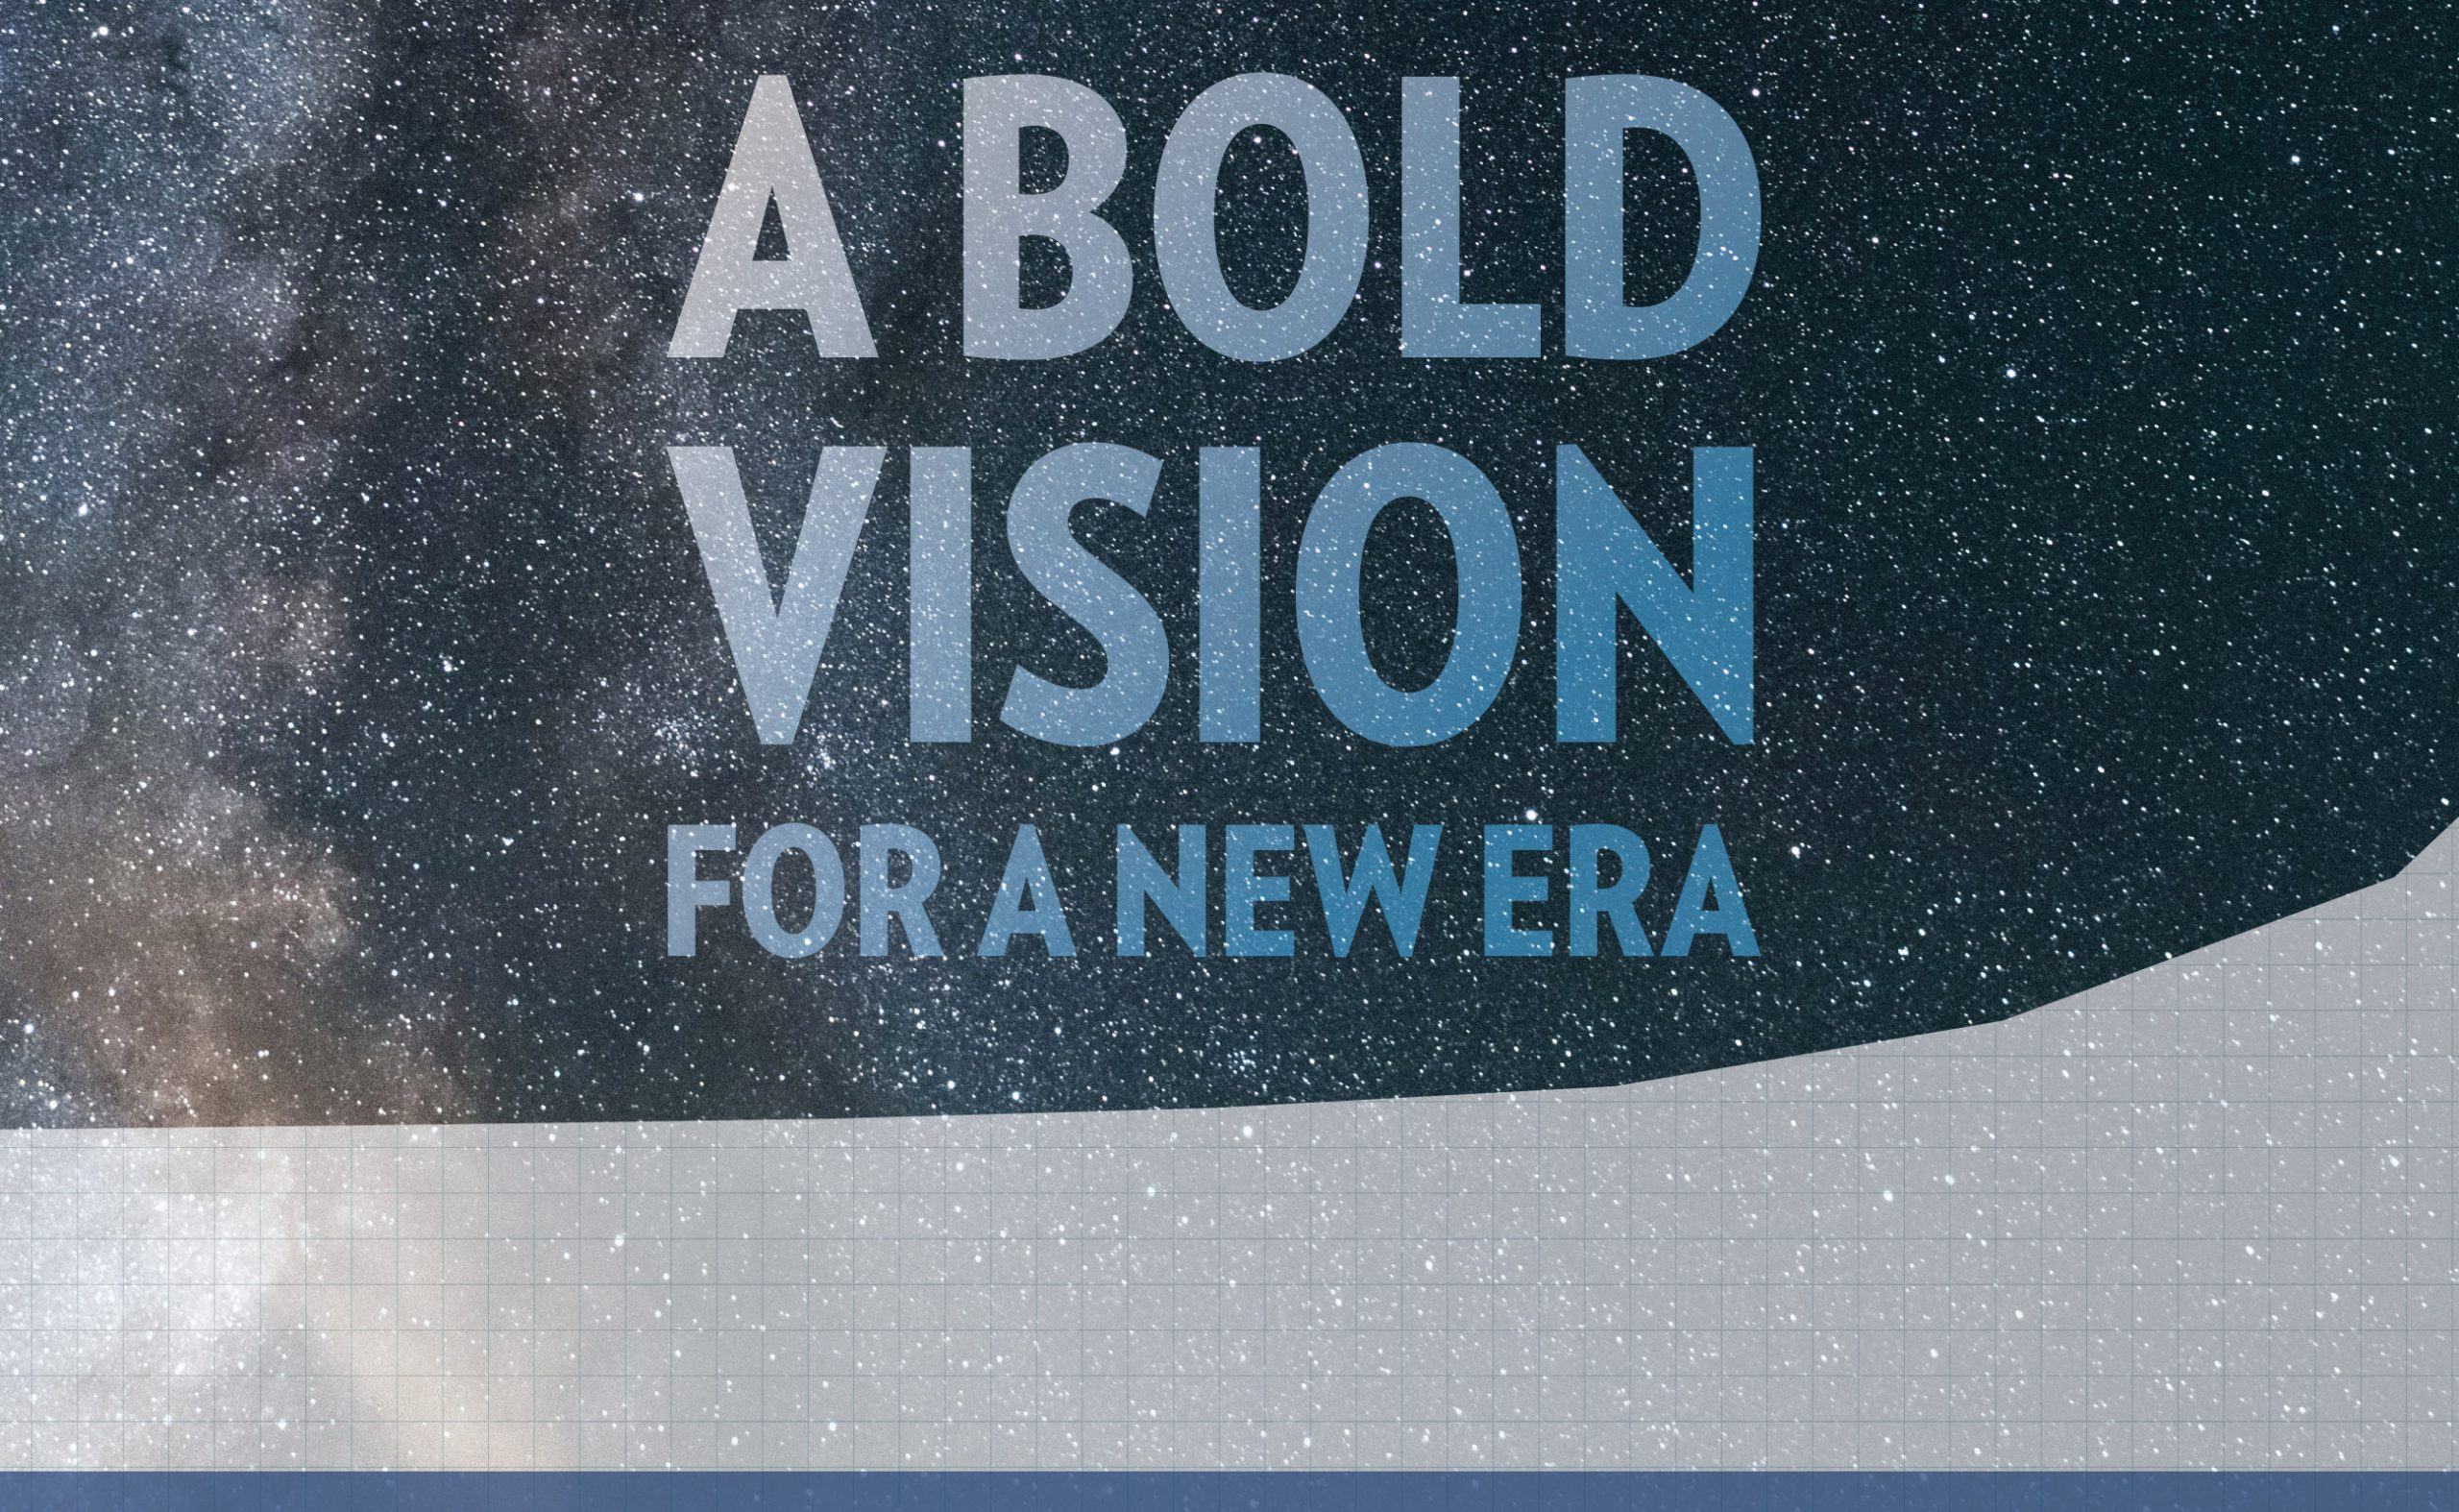 News from Hope: A Bold Vision for a New Era